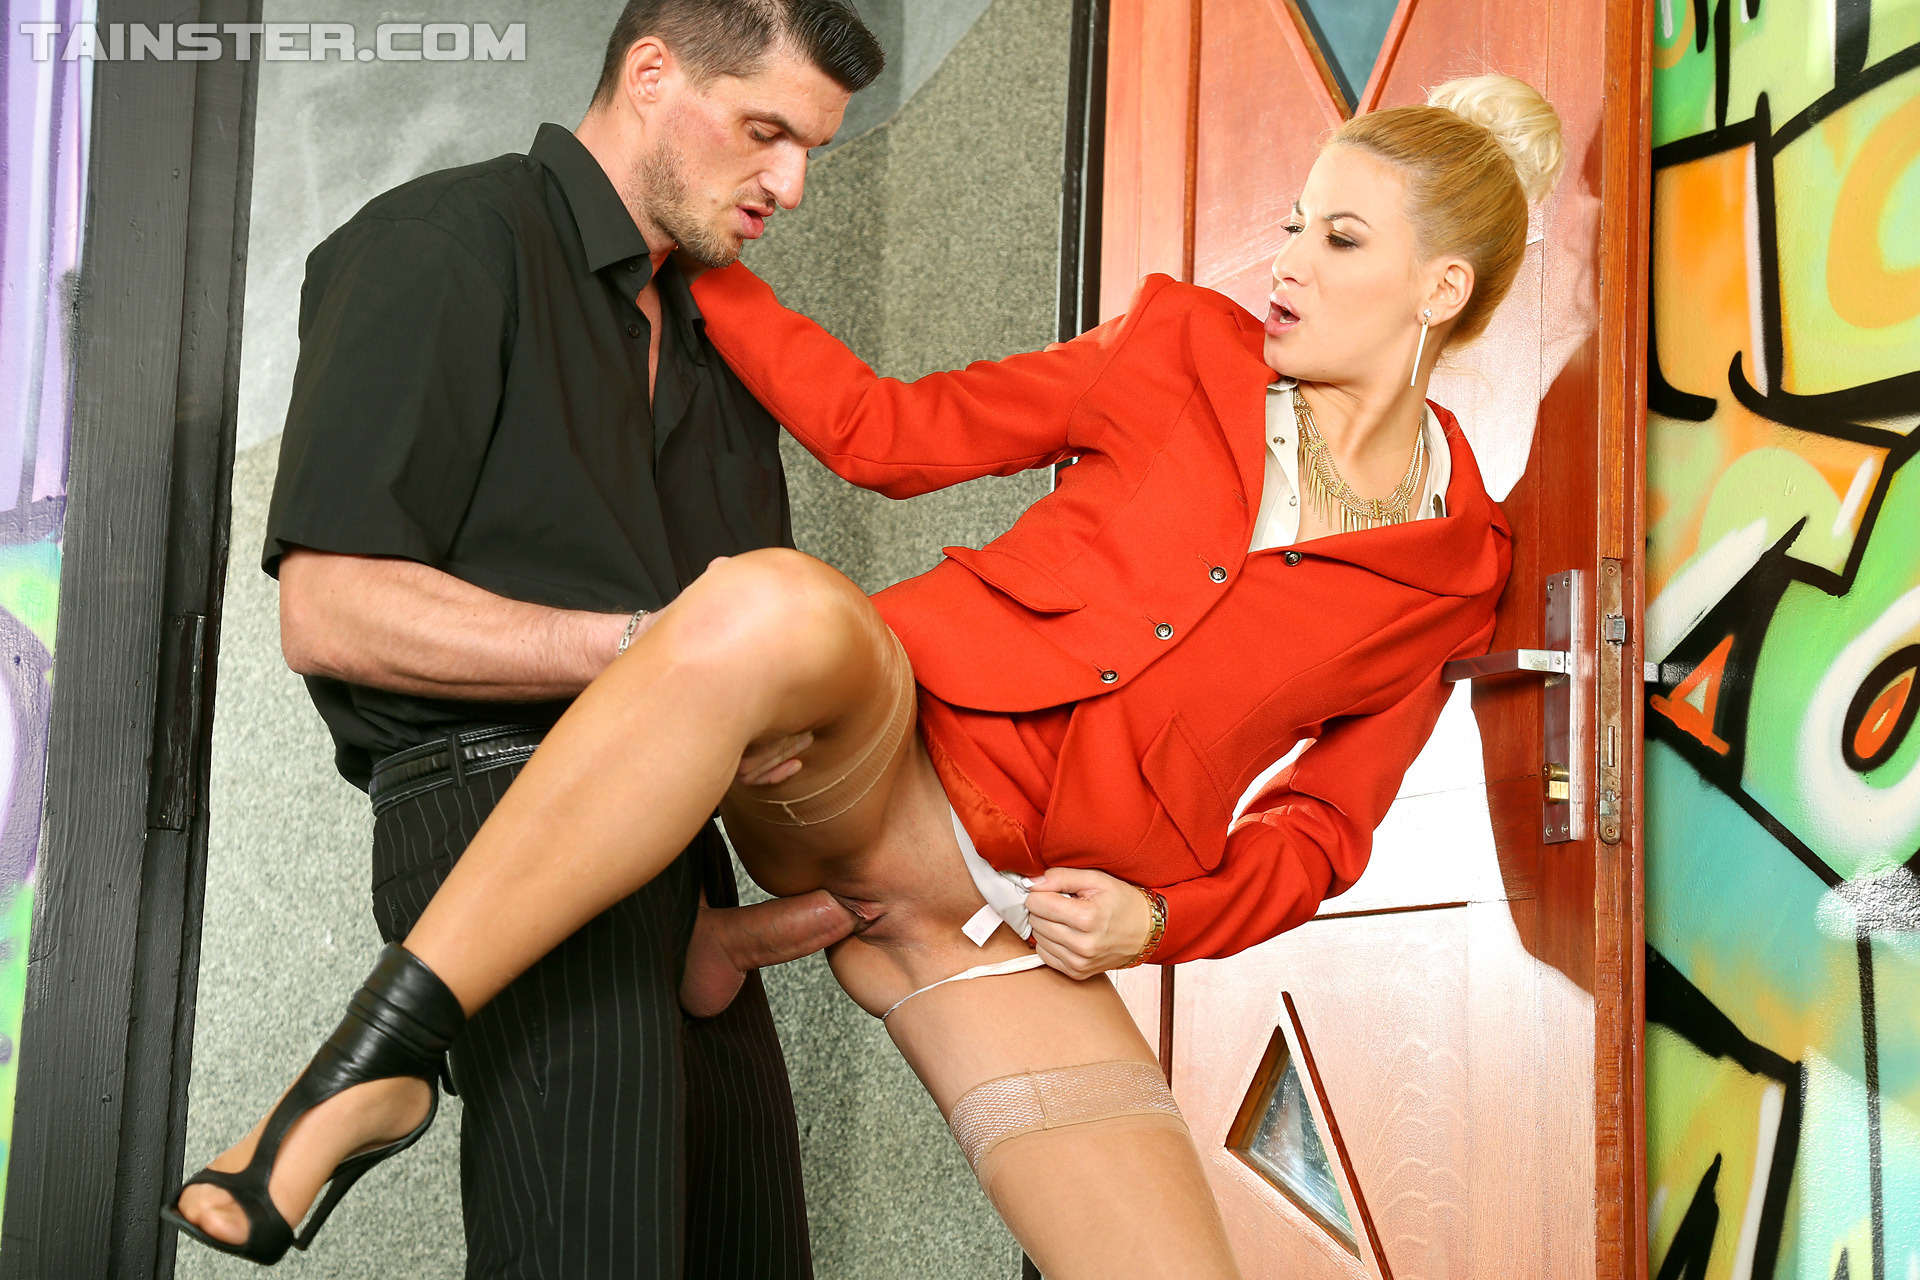 Hardcore fully clothed sex pics, the vargas girl porn